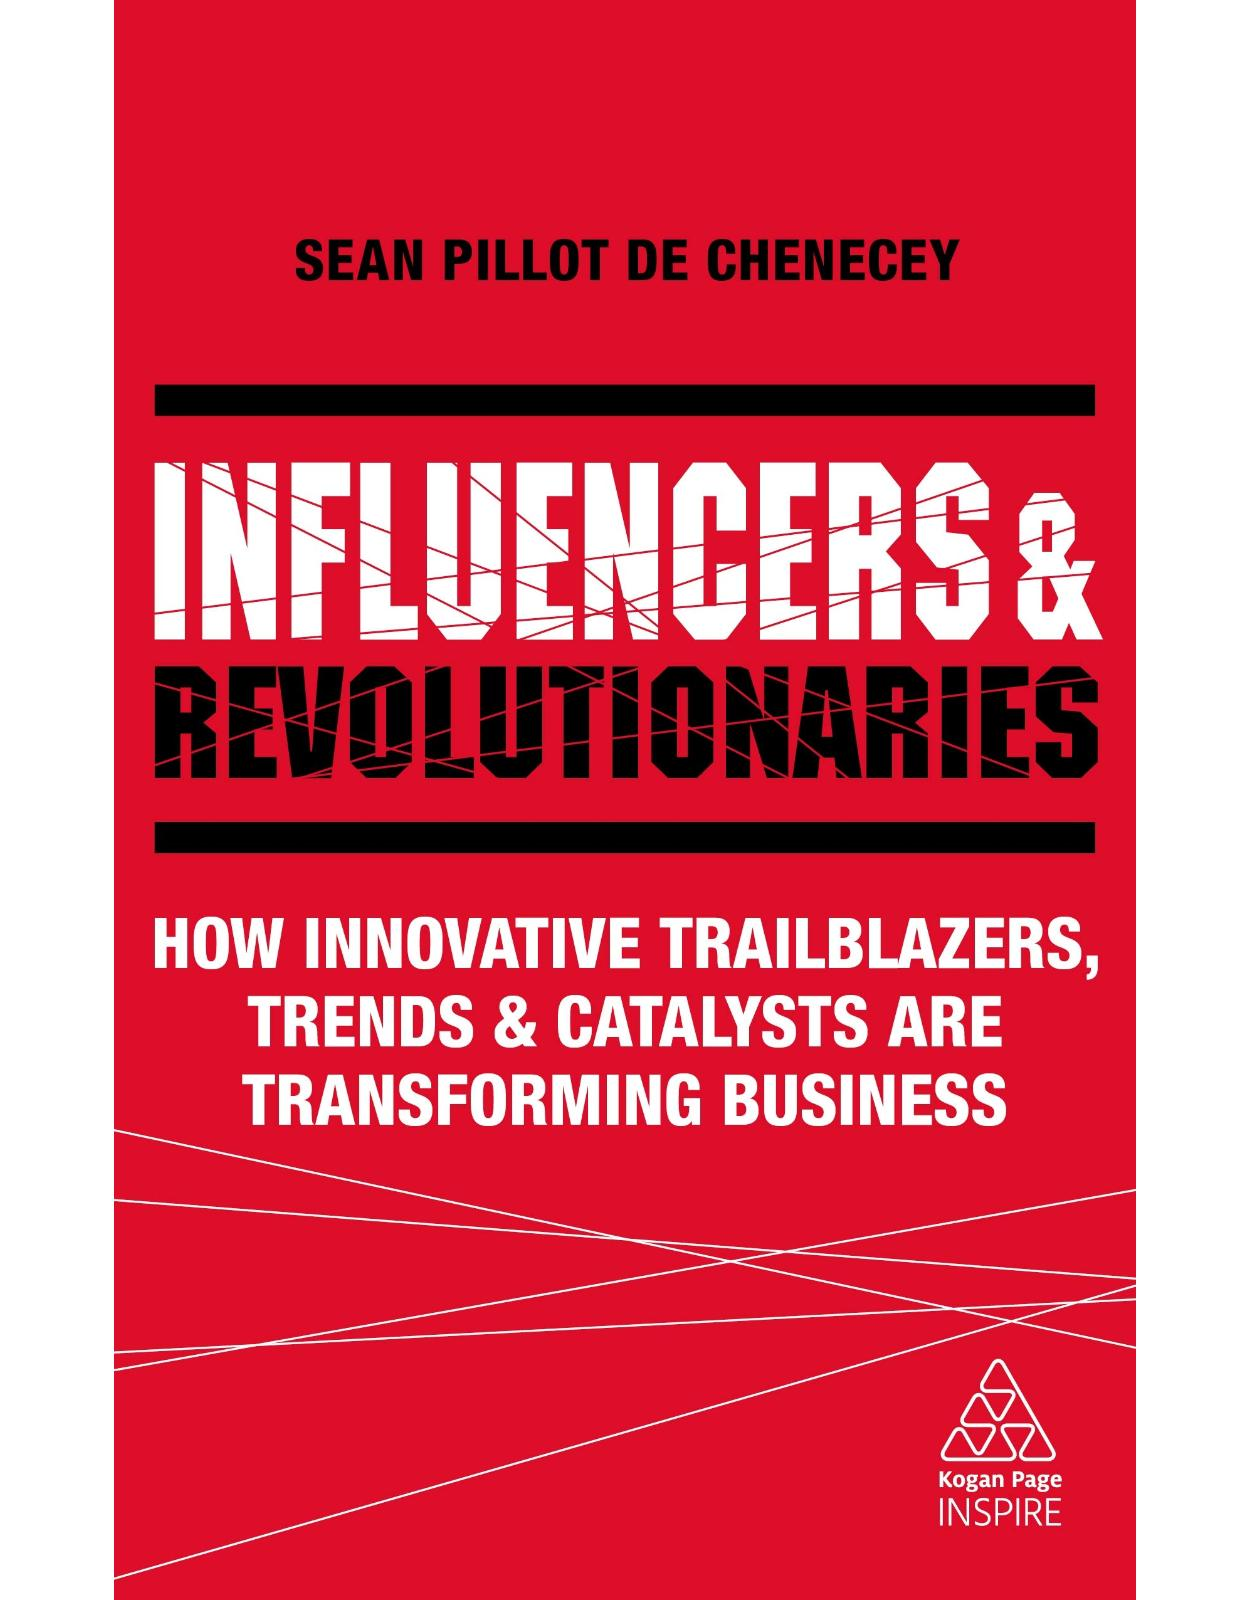 Influencers and Revolutionaries: How Innovative Trailblazers, Trends and Catalysts Are Transforming Business